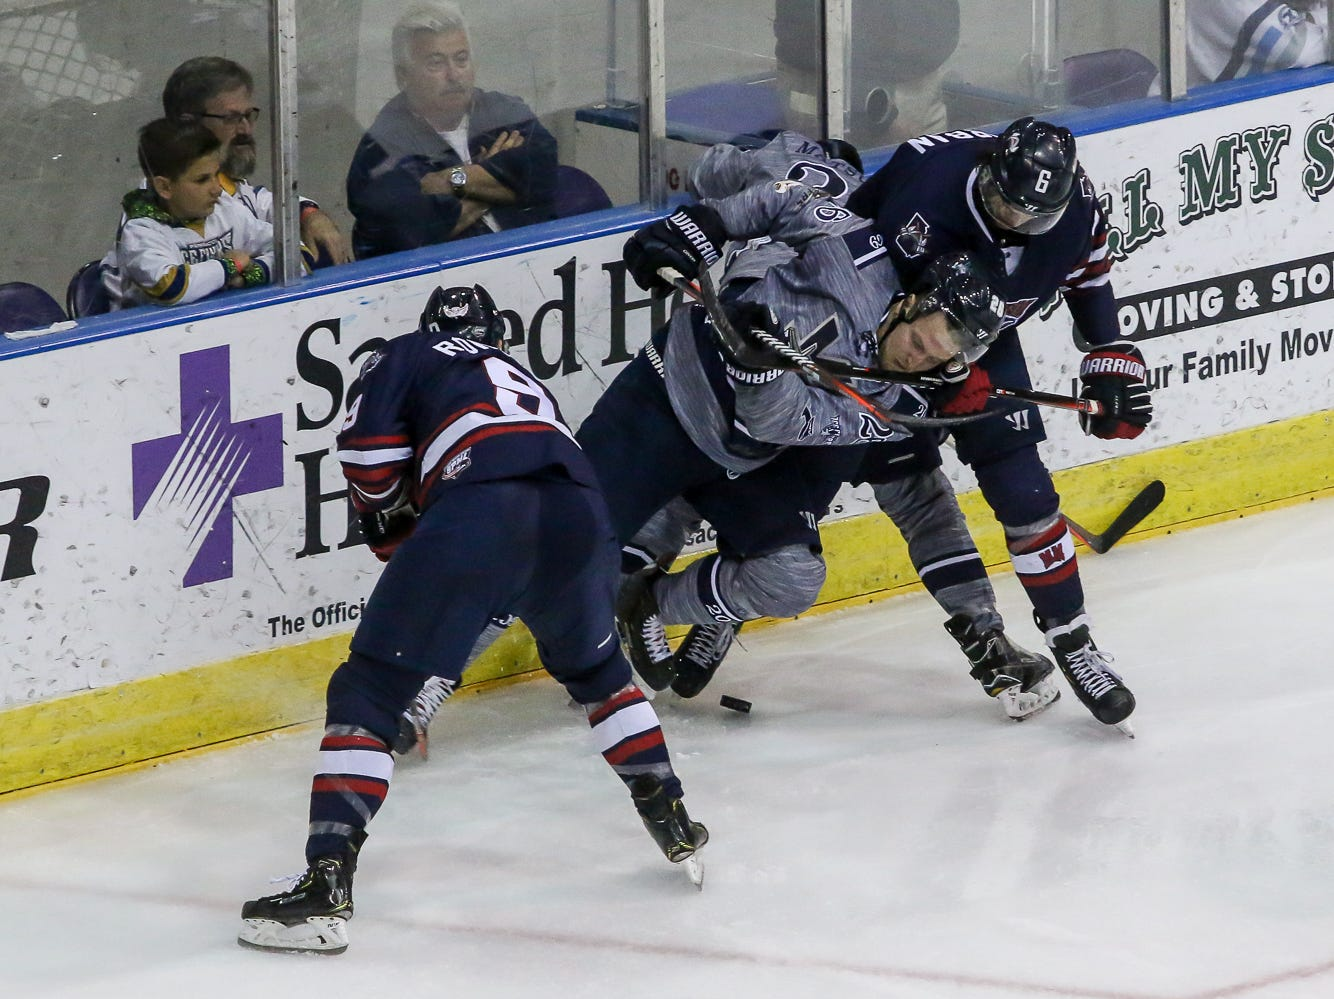 Pensacola's Brian Morgan (26) gets tripped up as he battles for control of the puck against Macon's Zach Urban (6) during the last home game of the regular season at the Pensacola Bay Center on Saturday, March 23, 2019. With over 4,300 people in attendance for Pensacola's 3-1 victory, the Ice Flyers mark six straight years of over 100,000 people at their home games each season. The team has won their last five games in a row and will finish out their last five games on the road before entering the playoffs in a couple of weeks.